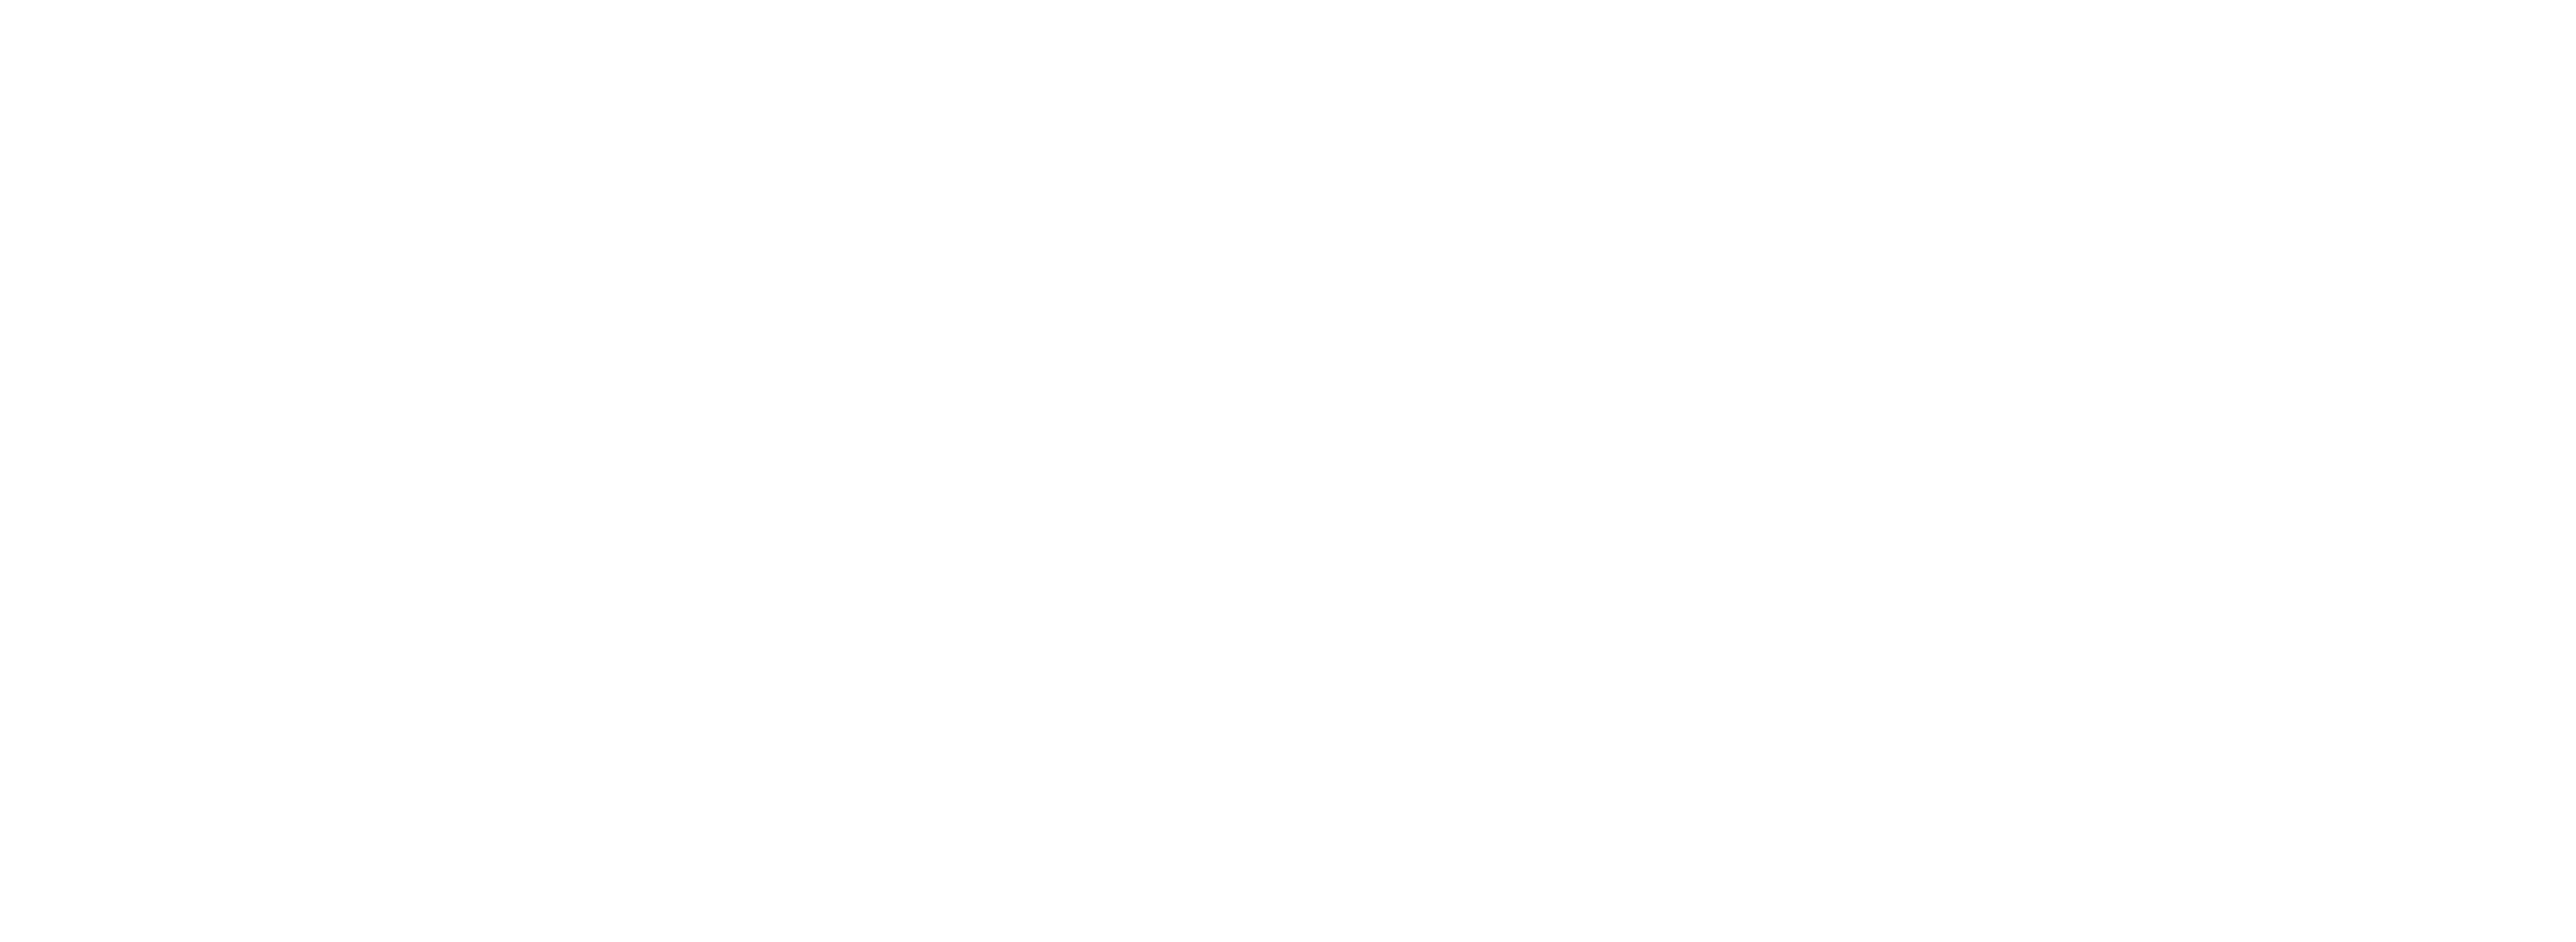 Group Baker & Norton